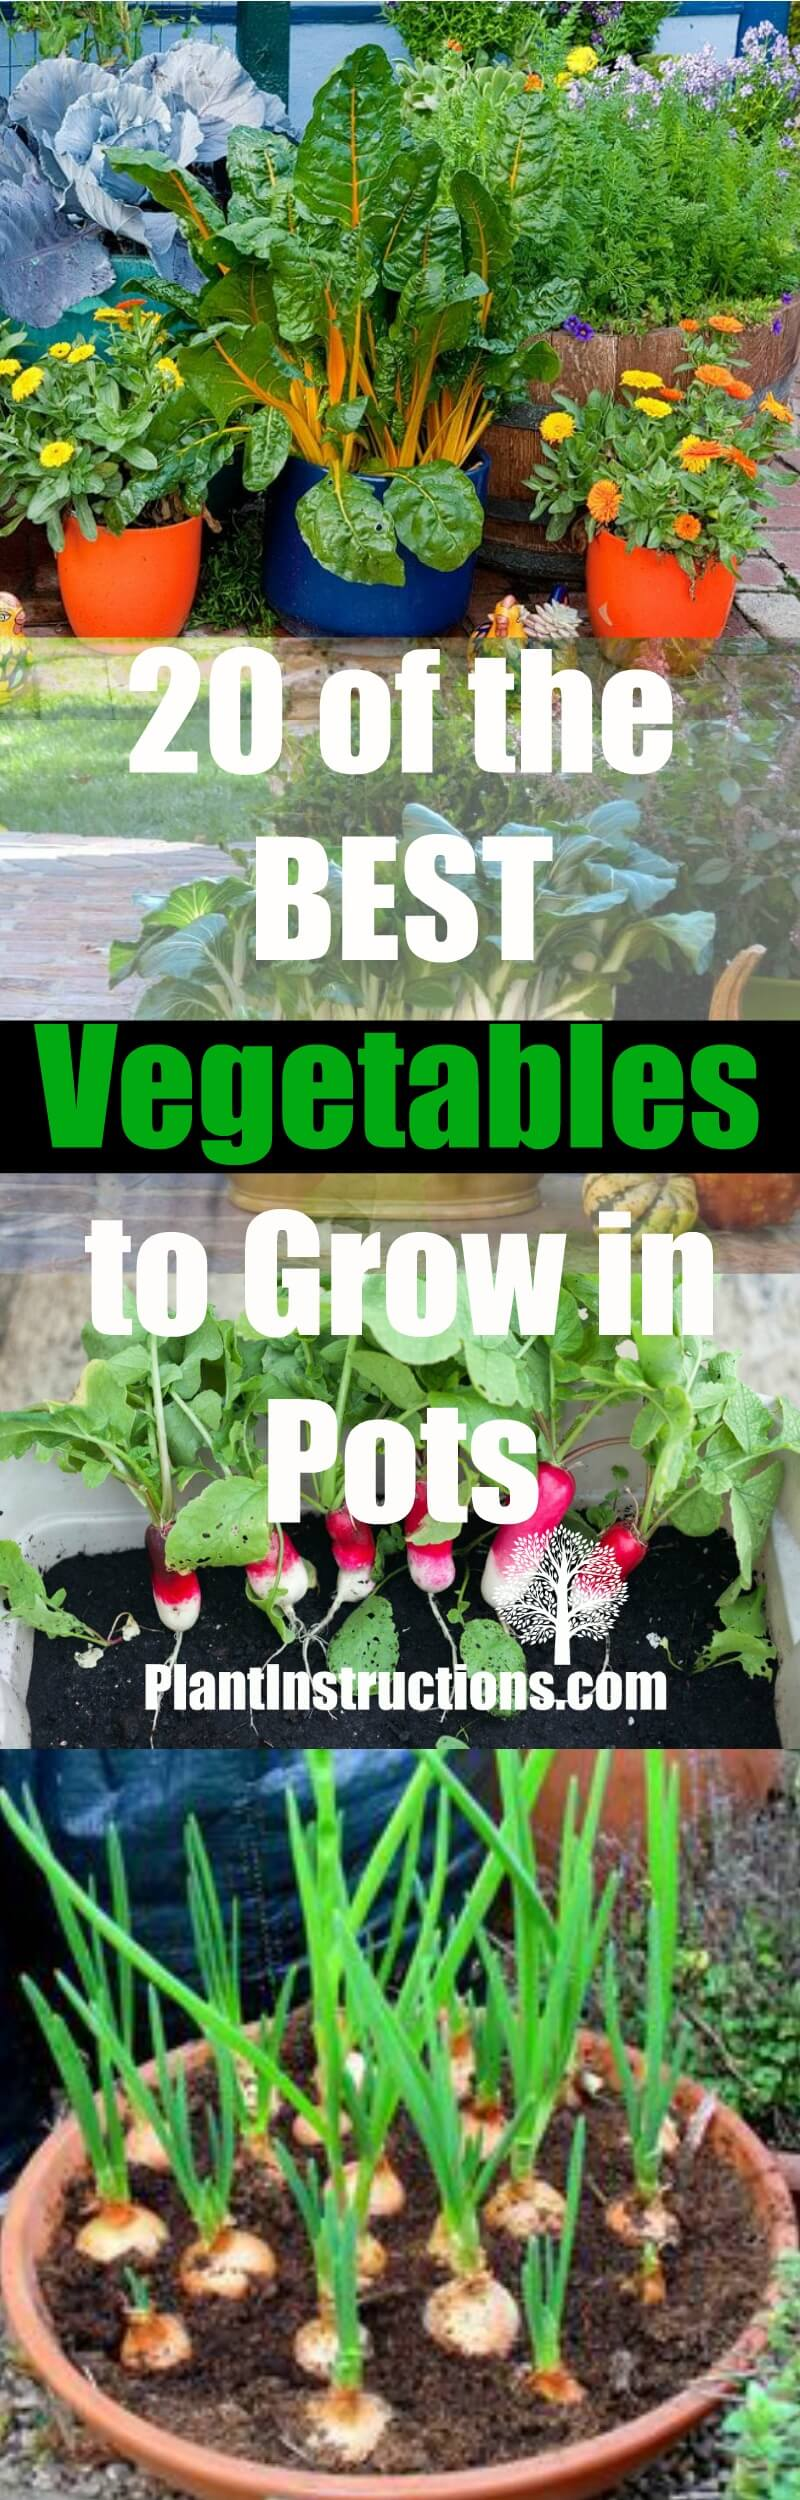 20 best vegetables to grow in pots plant instructions for Easiest vegetables to grow